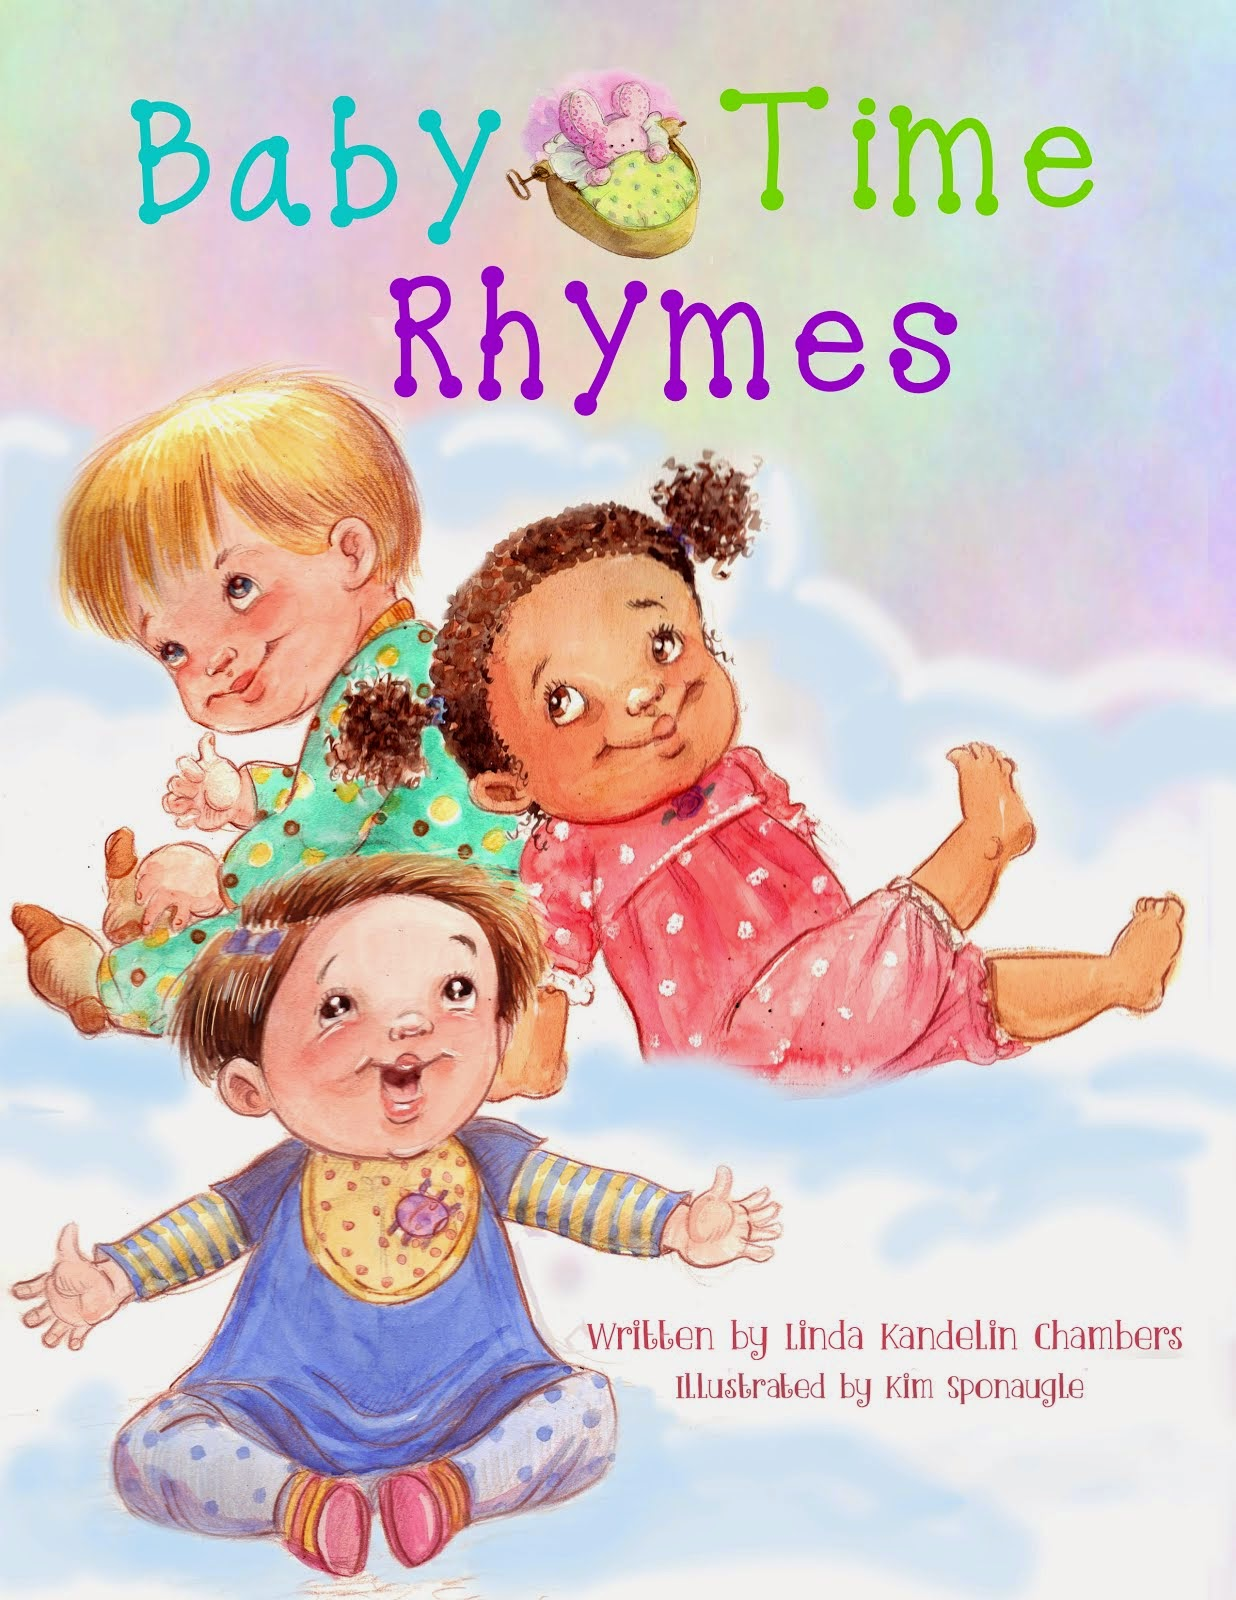 Baby Time Rhymes is now available!